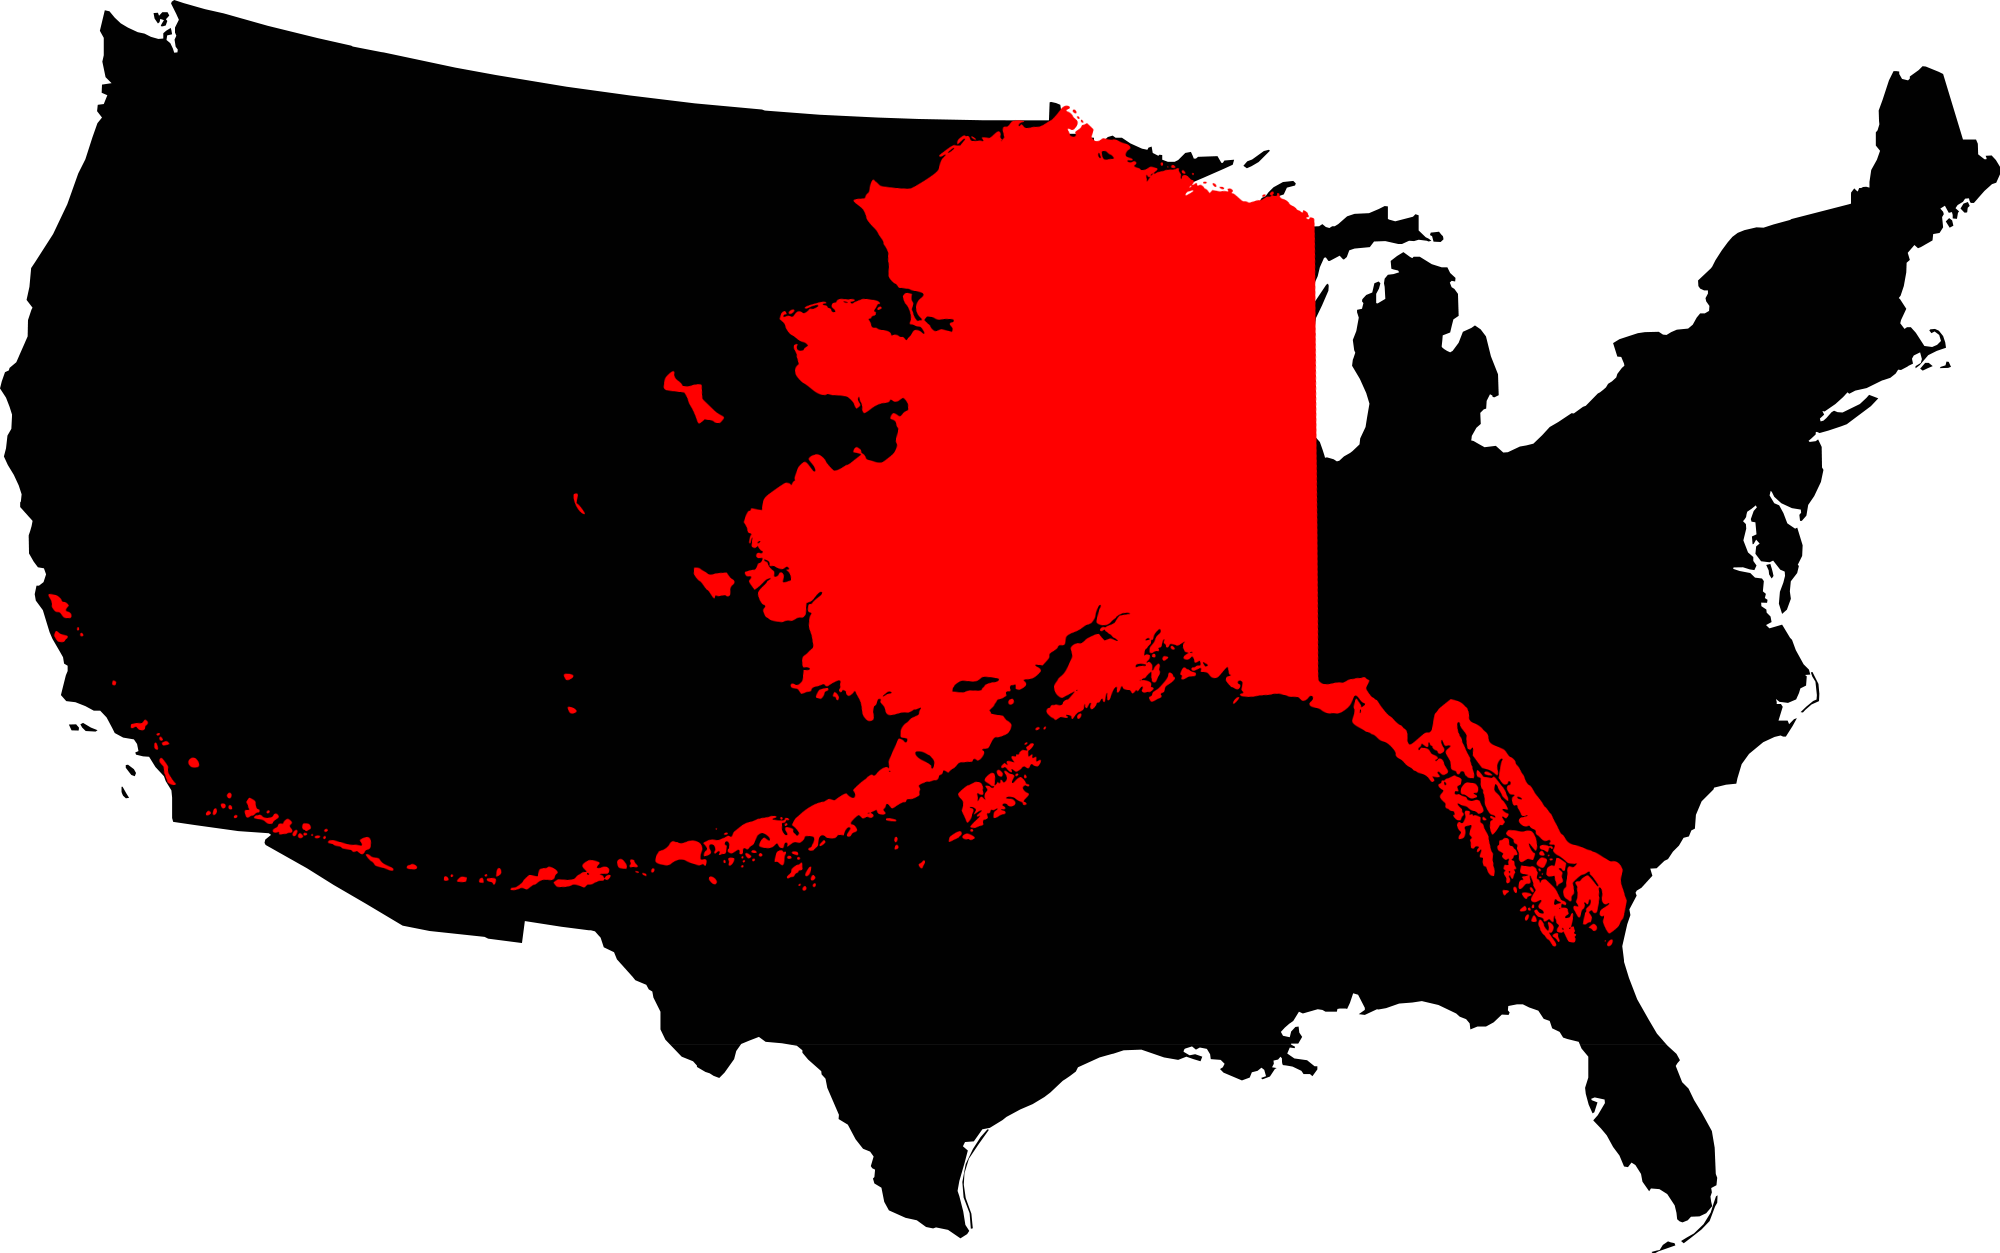 FileAlaska Compared To The United States Mappng Wikimedia Commons - Us map and alaska